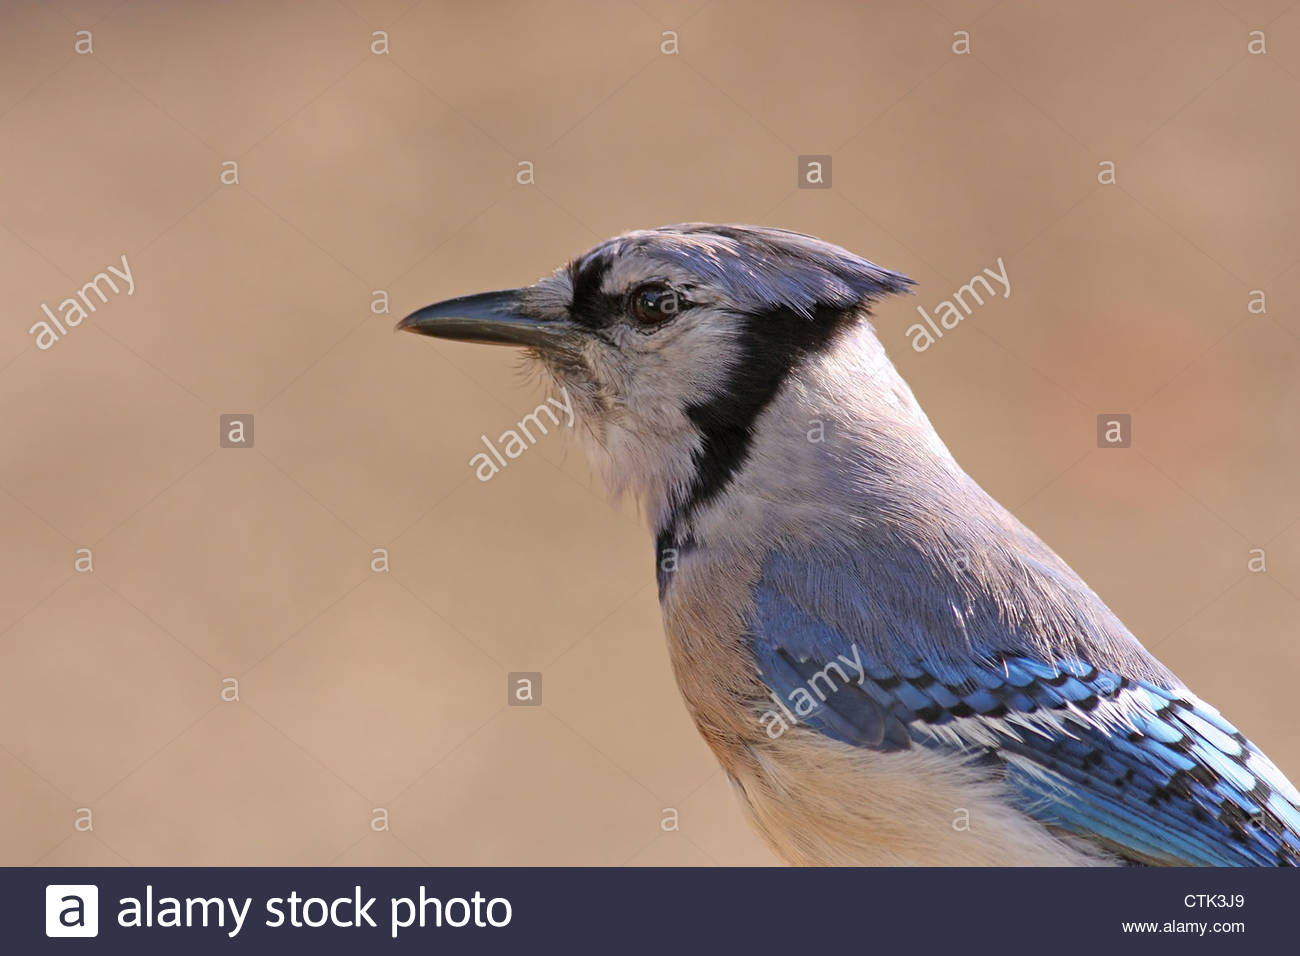 Blue Jay close up Profile Stock Photo